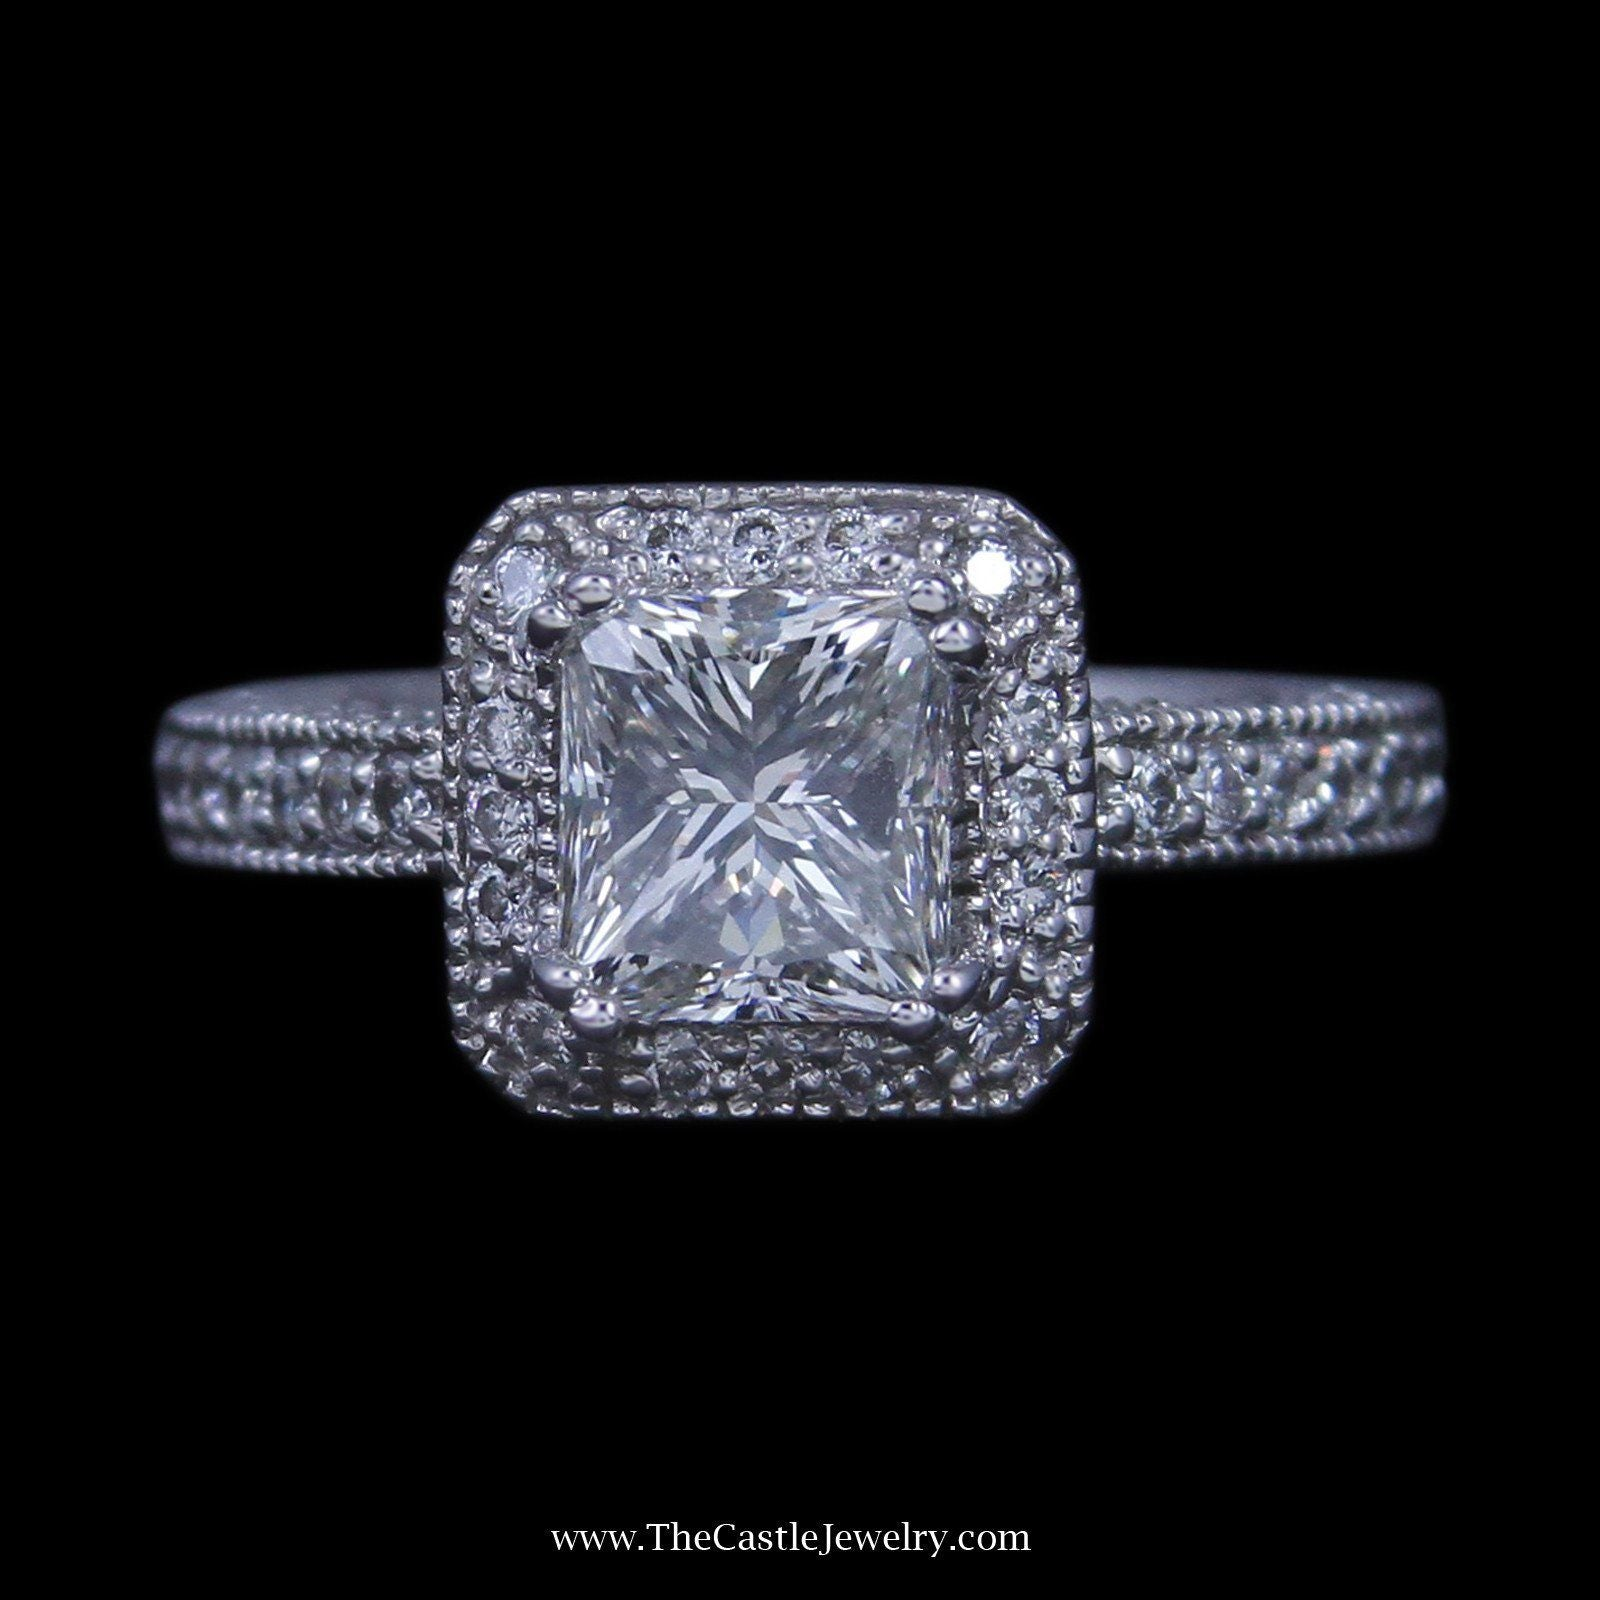 2.02ct Princess Diamond Engagement Ring w/ Round Brilliant Cut Diamond Bezel & Sides in 14k